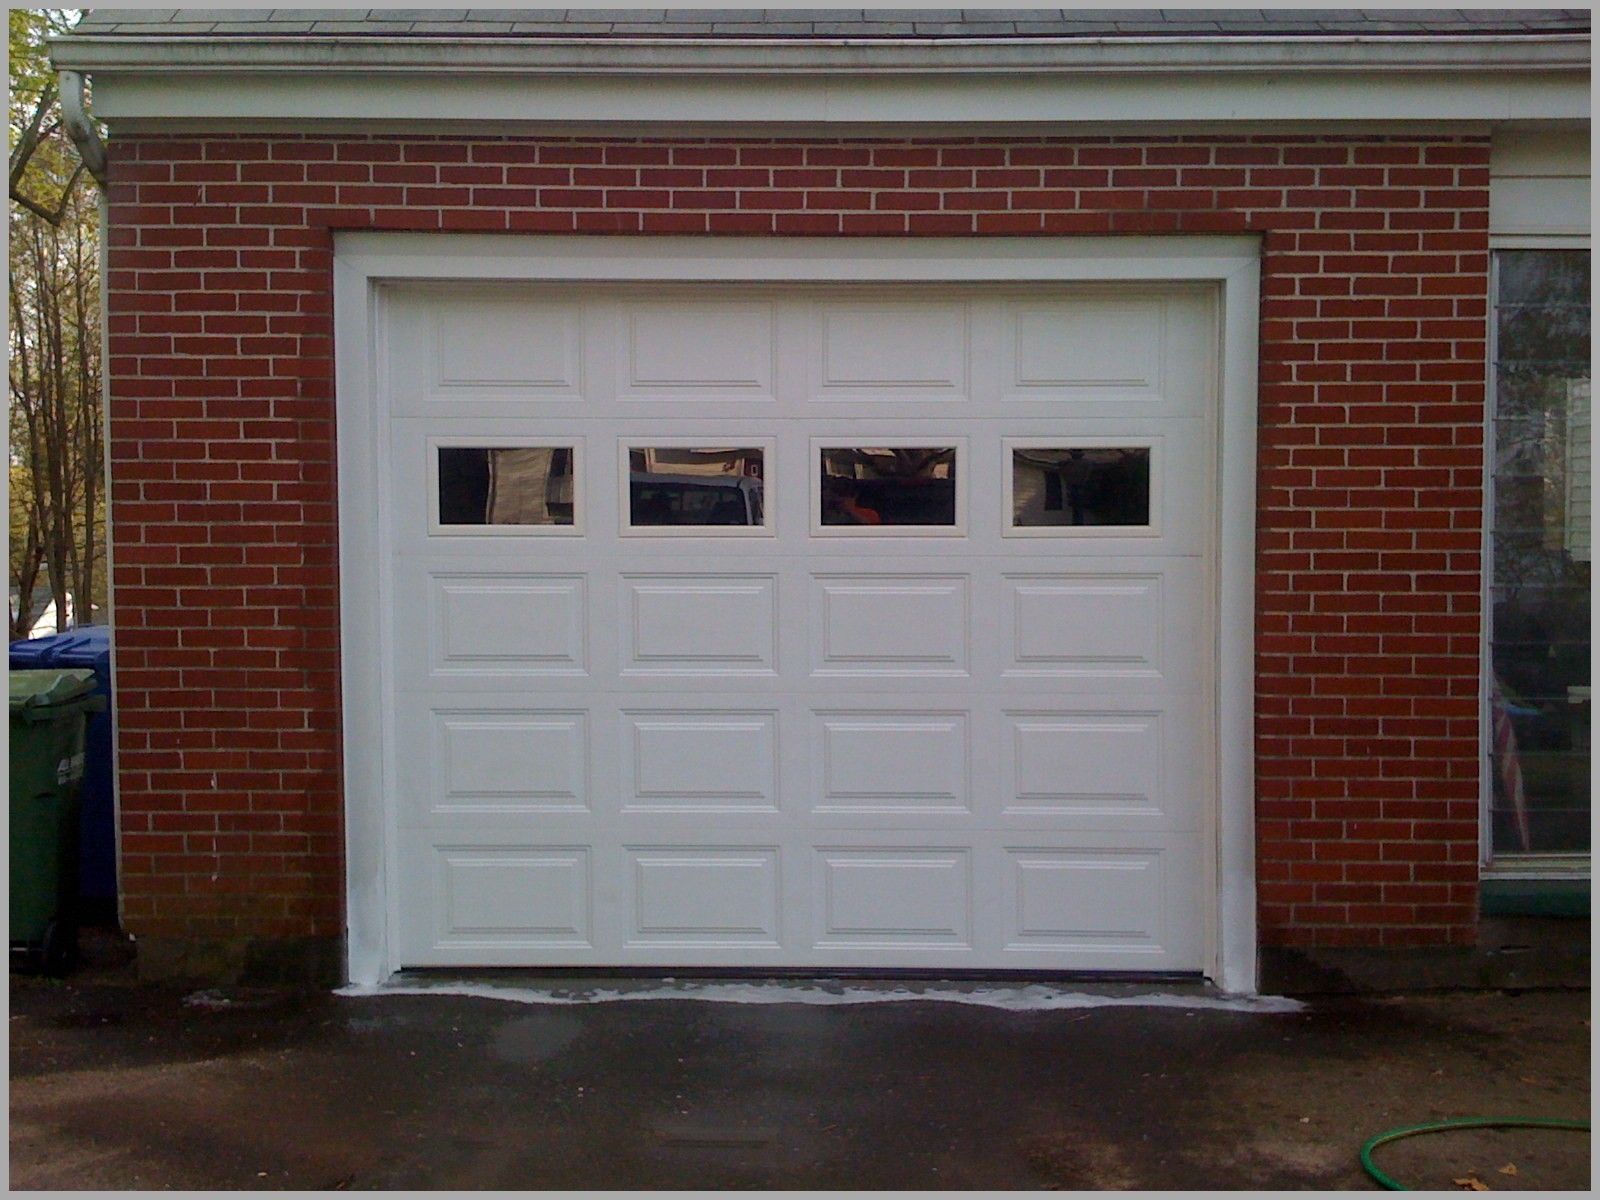 finish door inspire fl money guide doing with inspired to size for winter time basic garden garage typical you your detailed full of ideas albuquerque importance save dynamic own repair